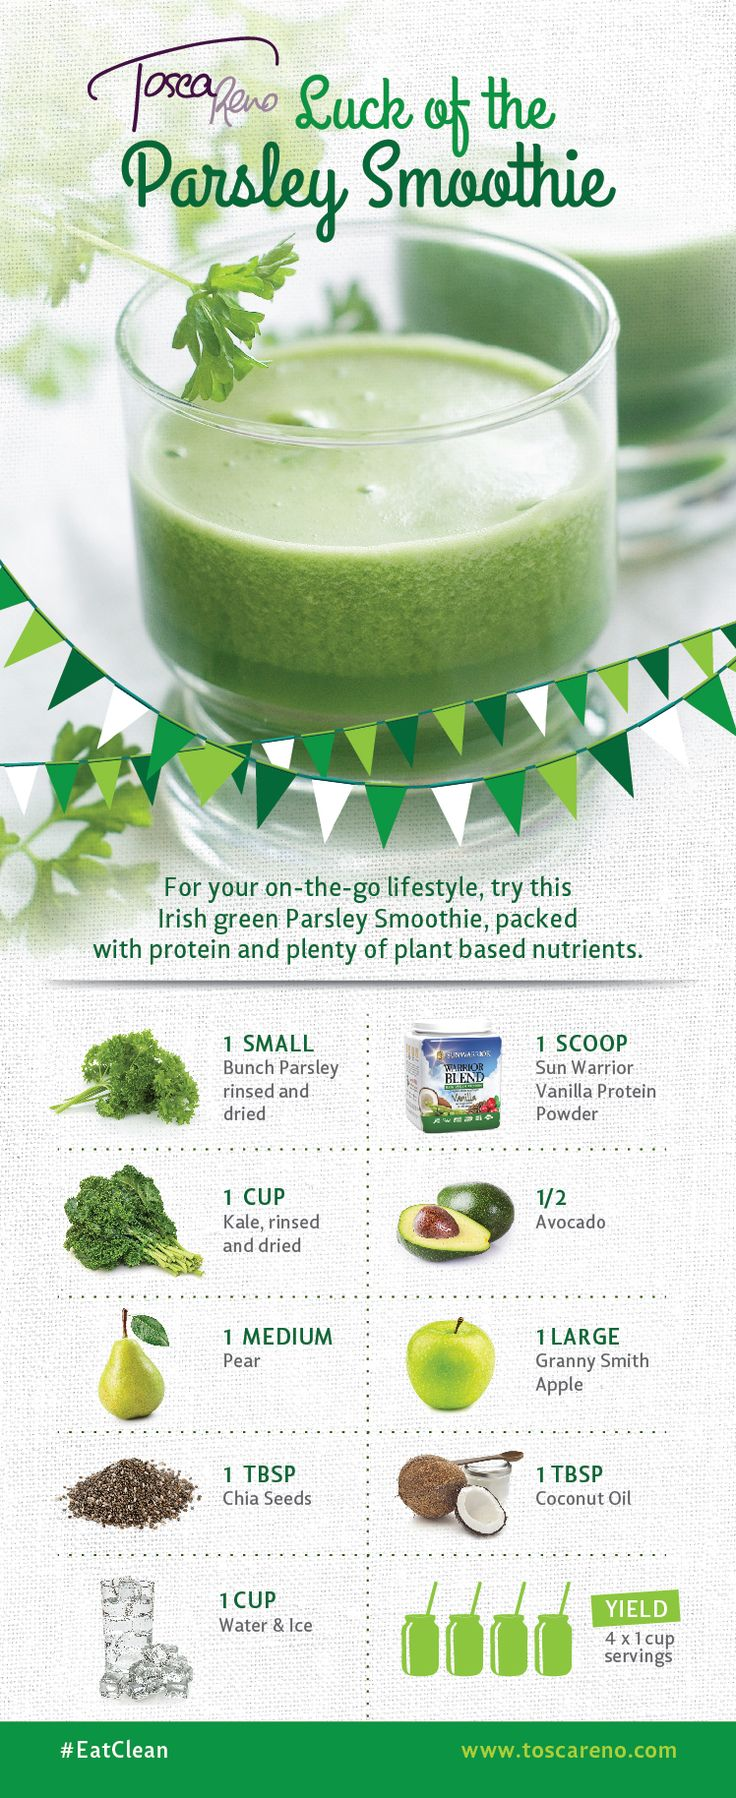 Happy #StPatricksDay! Try this #Luck of the #Parsley #Smoothie today -- or any day! : ) #eatclean #eatcleandiet #toscareno #eatingclean #eatinggreen #cleaneating #greensmoothie #avocado #protein #breakfast #smoothierecipe